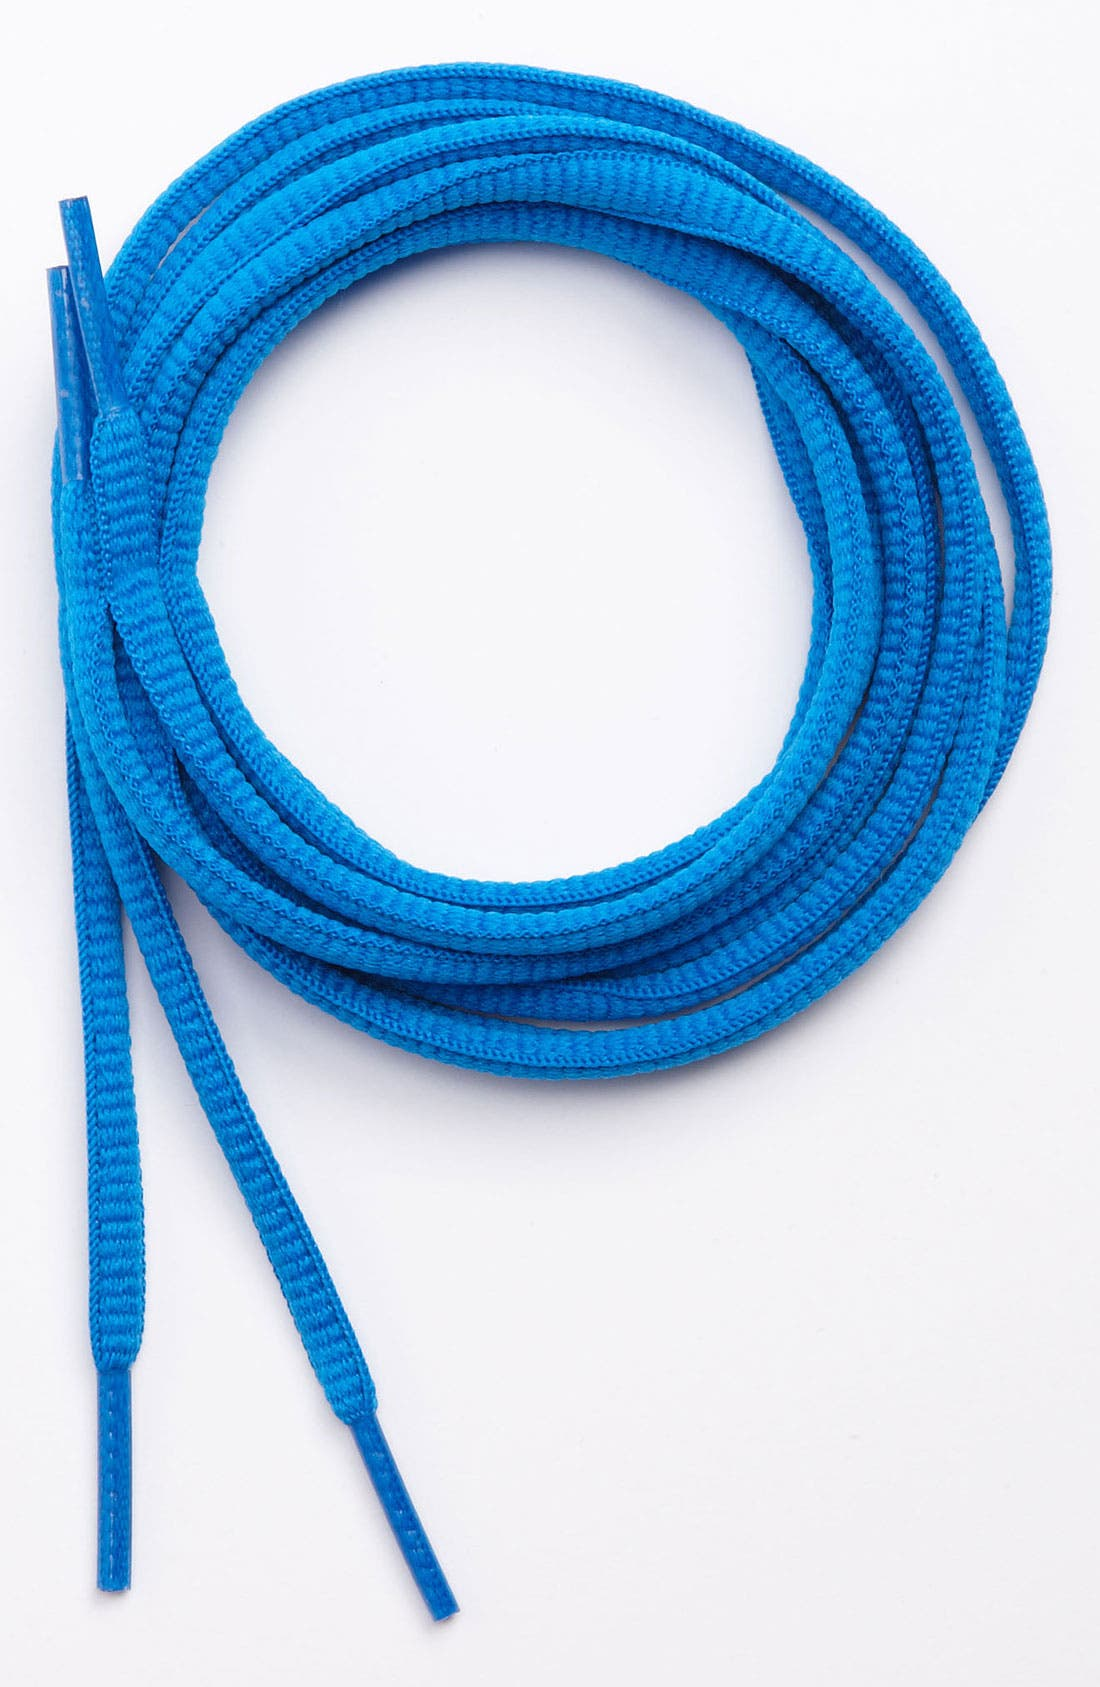 Alternate Image 1 Selected - Nordstrom 'Oval' Shoelaces (Little Kid & Big Kid)